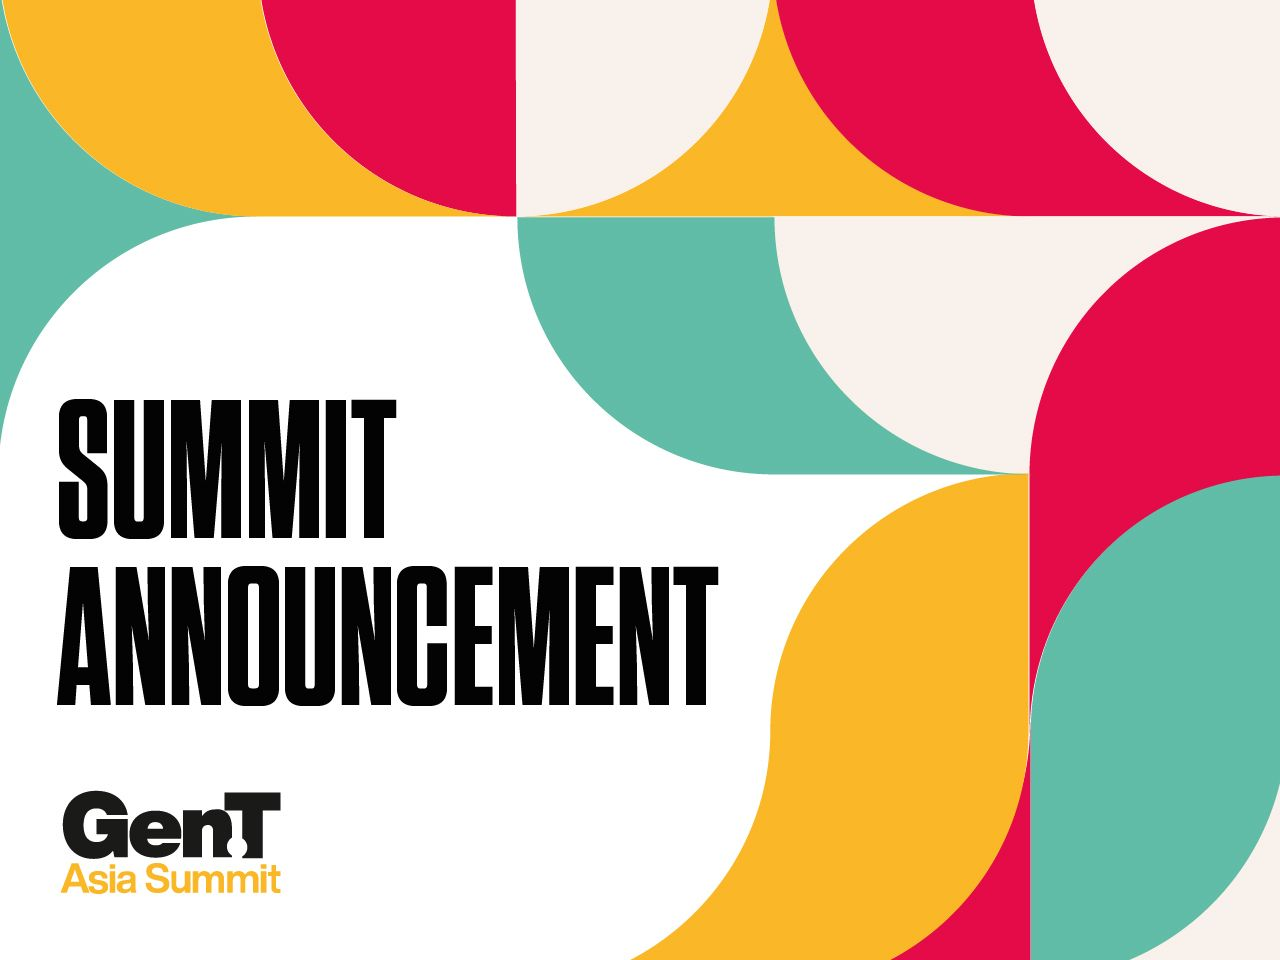 We Have An Important Announcement About The Gen.T Asia Summit